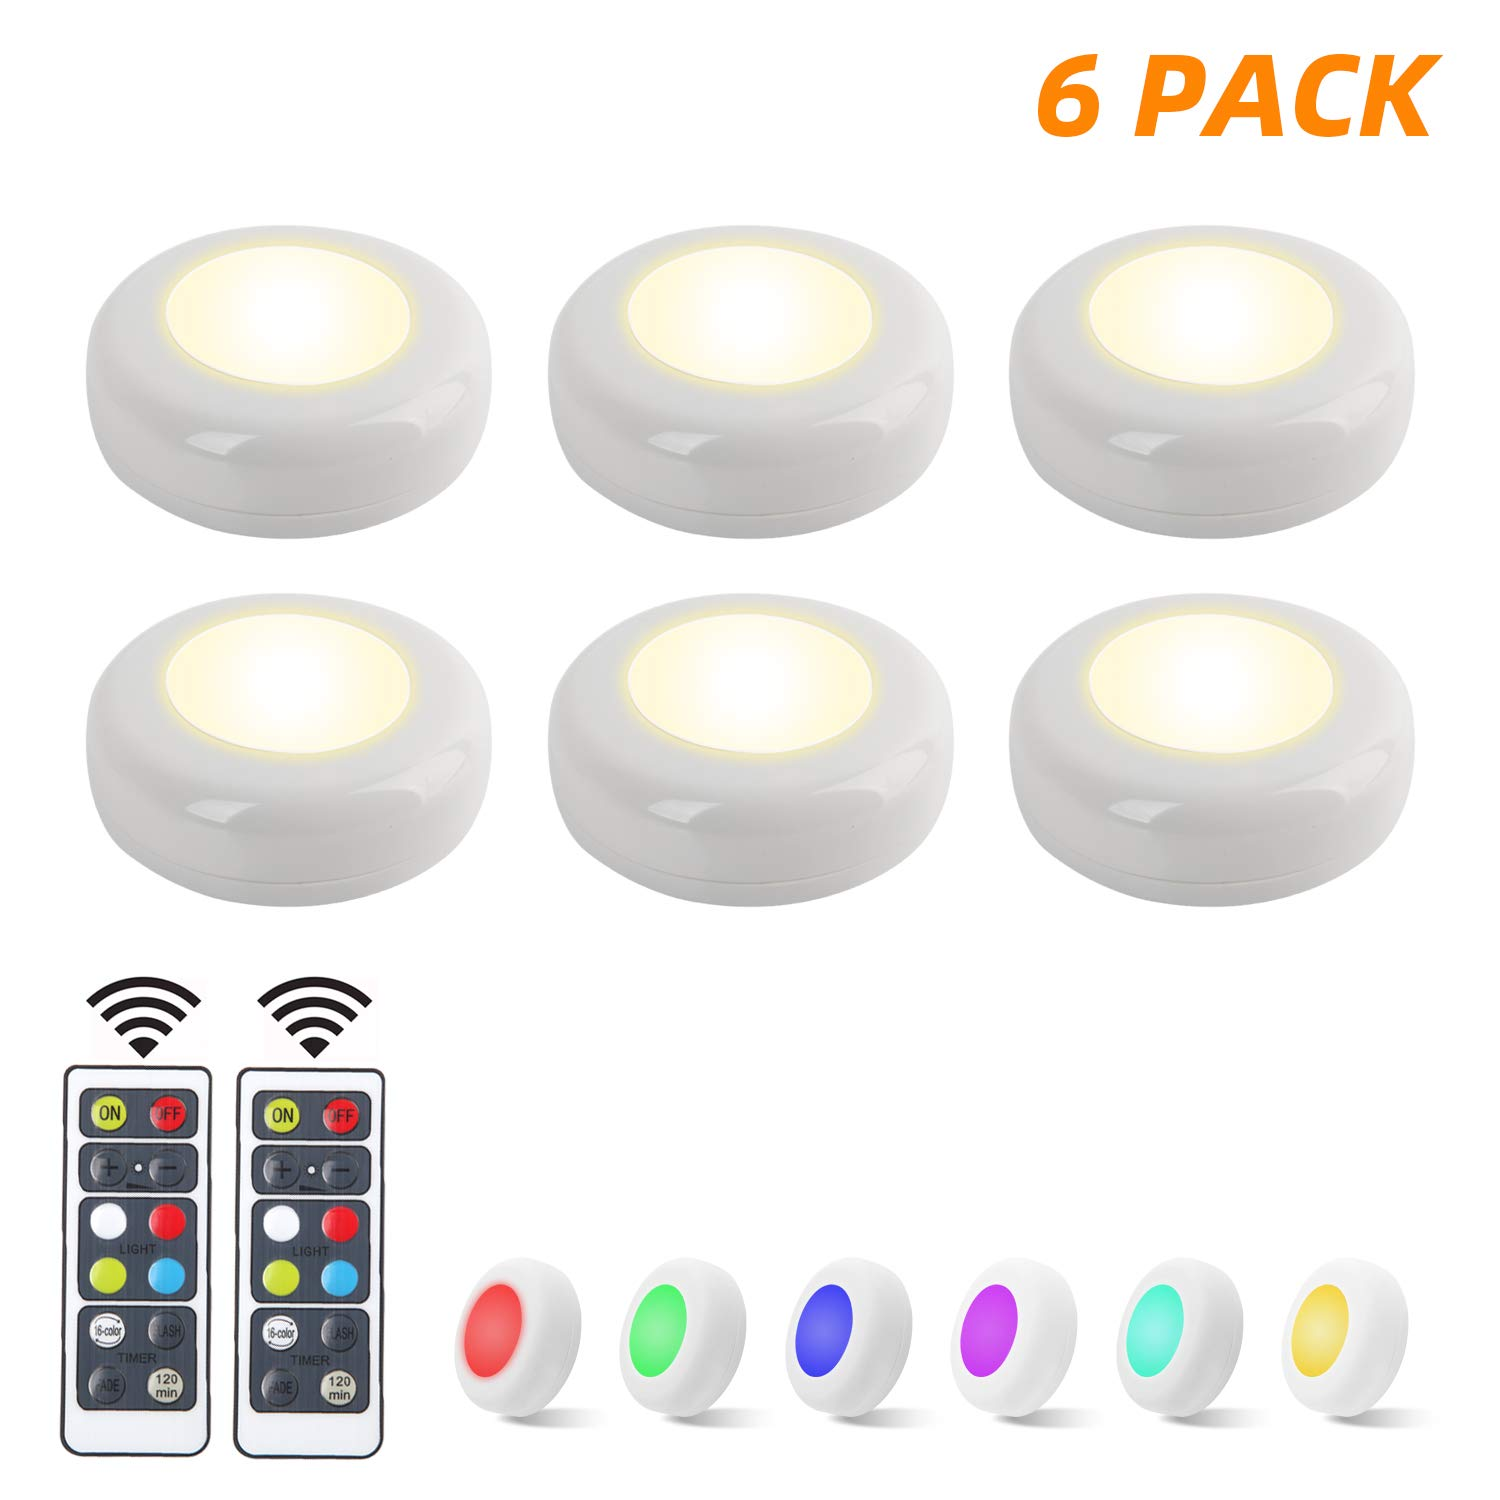 YLCVBUD 6 Pack RGB Under Cabinet Lighting LED Closet Lights Wireless LED Puck Lights 16 Colors 3 Modes with Remote Control Timer Function Battery Powered Dimmable only White